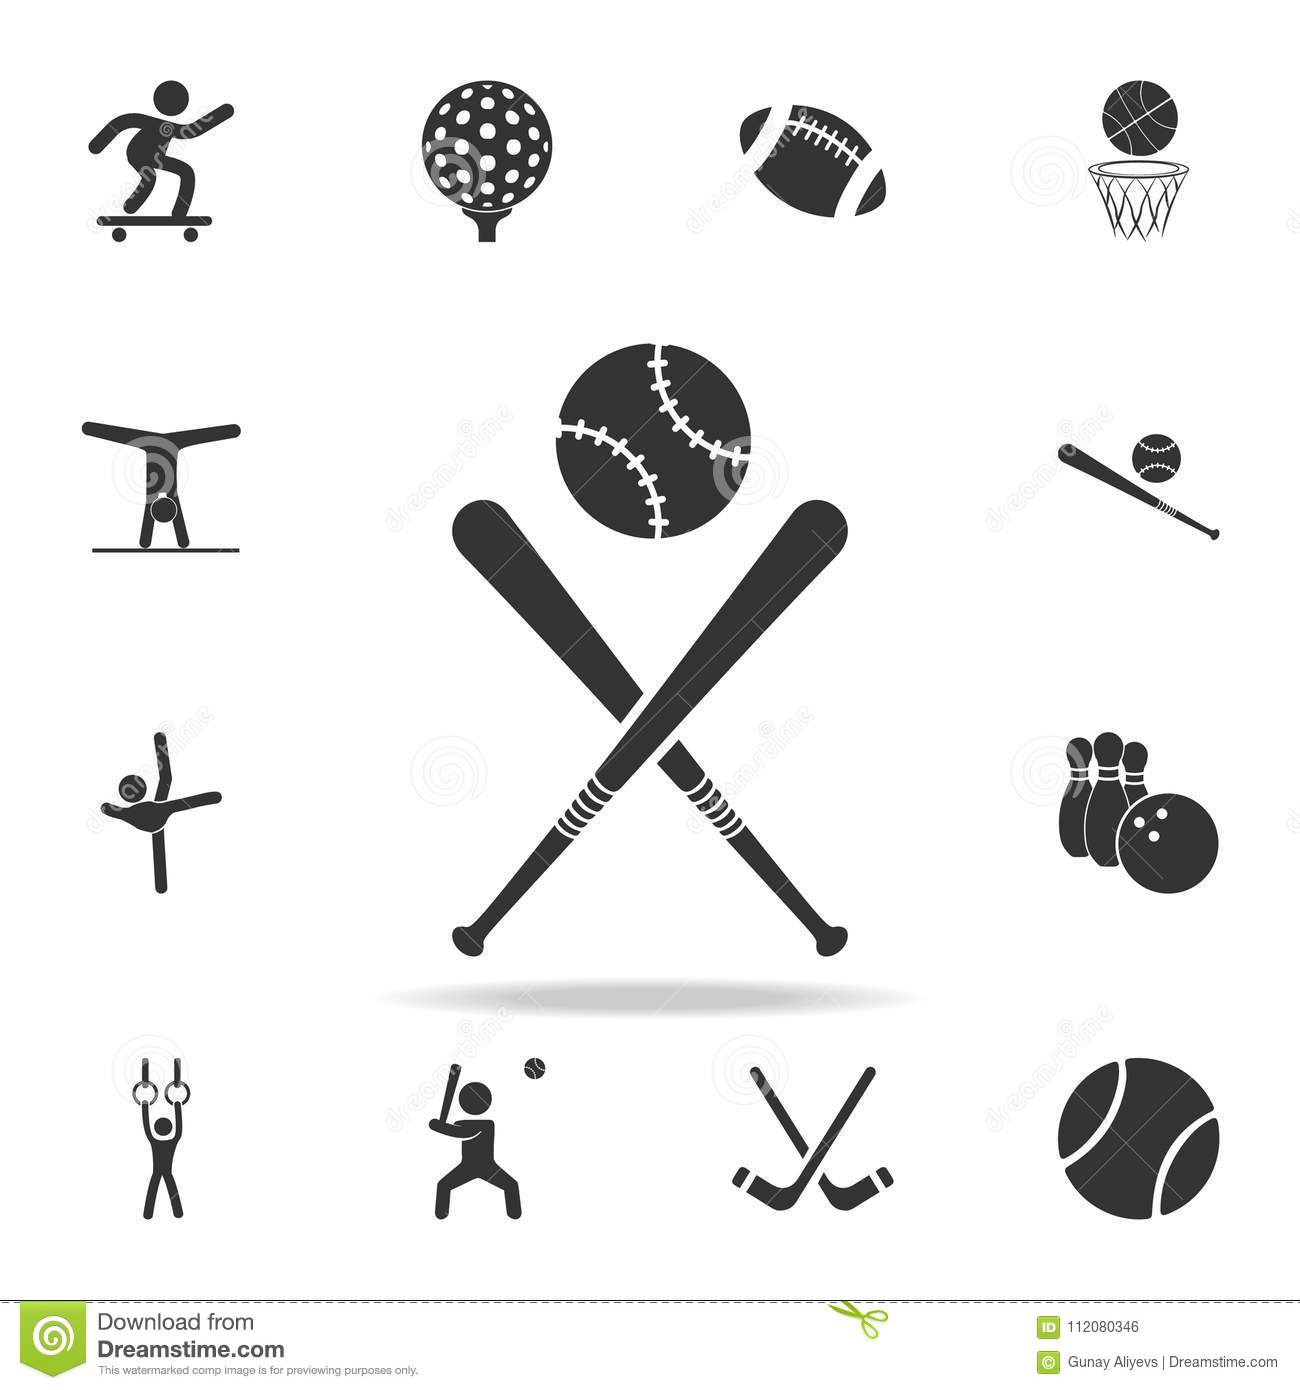 Baseball Bat And Ball Icon Detailed Set Of Athletes And Accessories